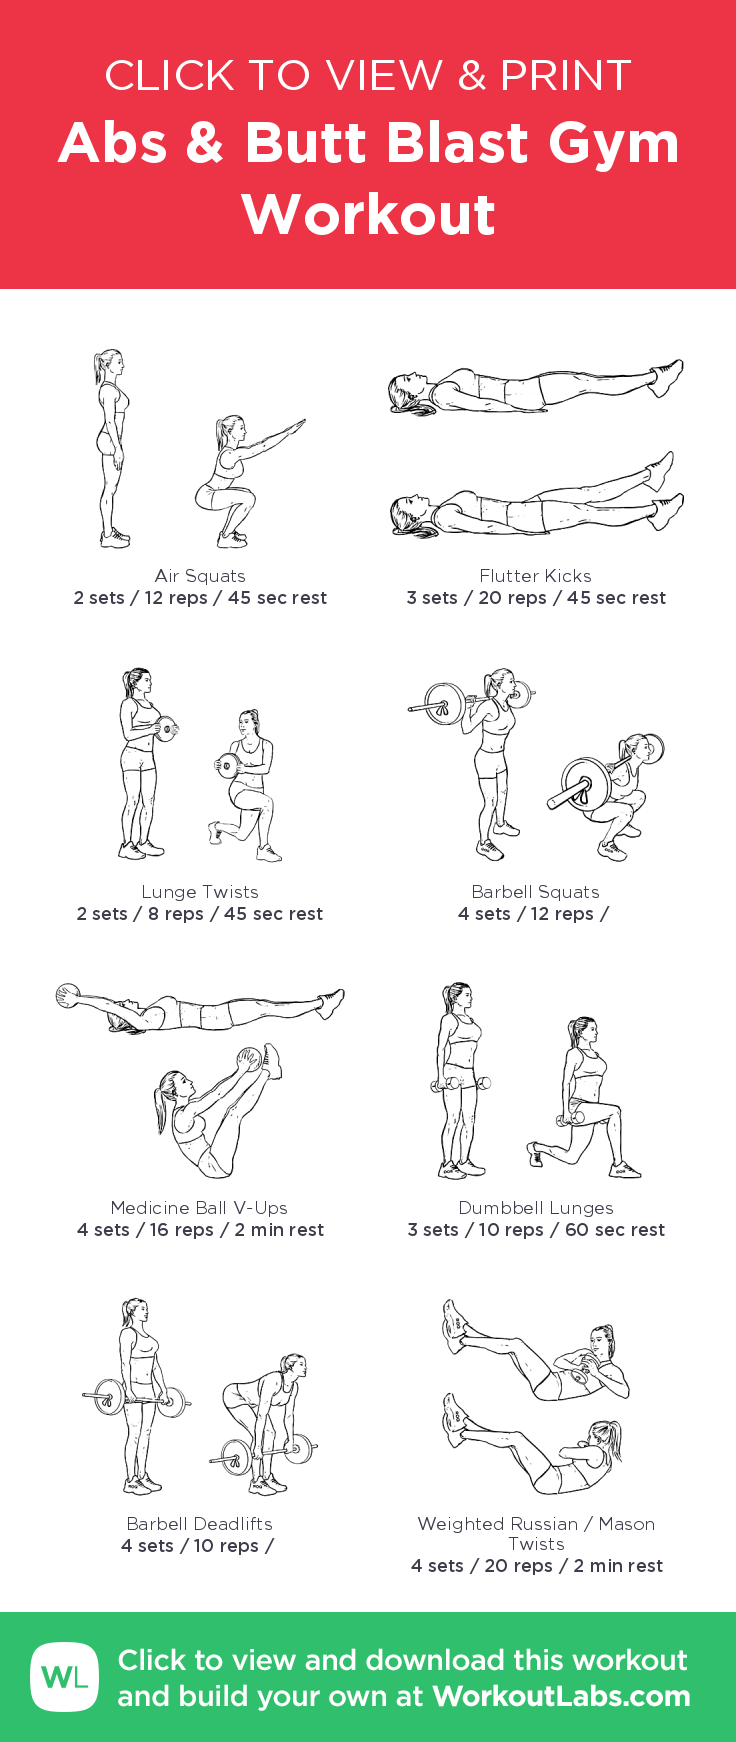 Abs & Butt Blast Gym Workout – illustrated exercise plan created at